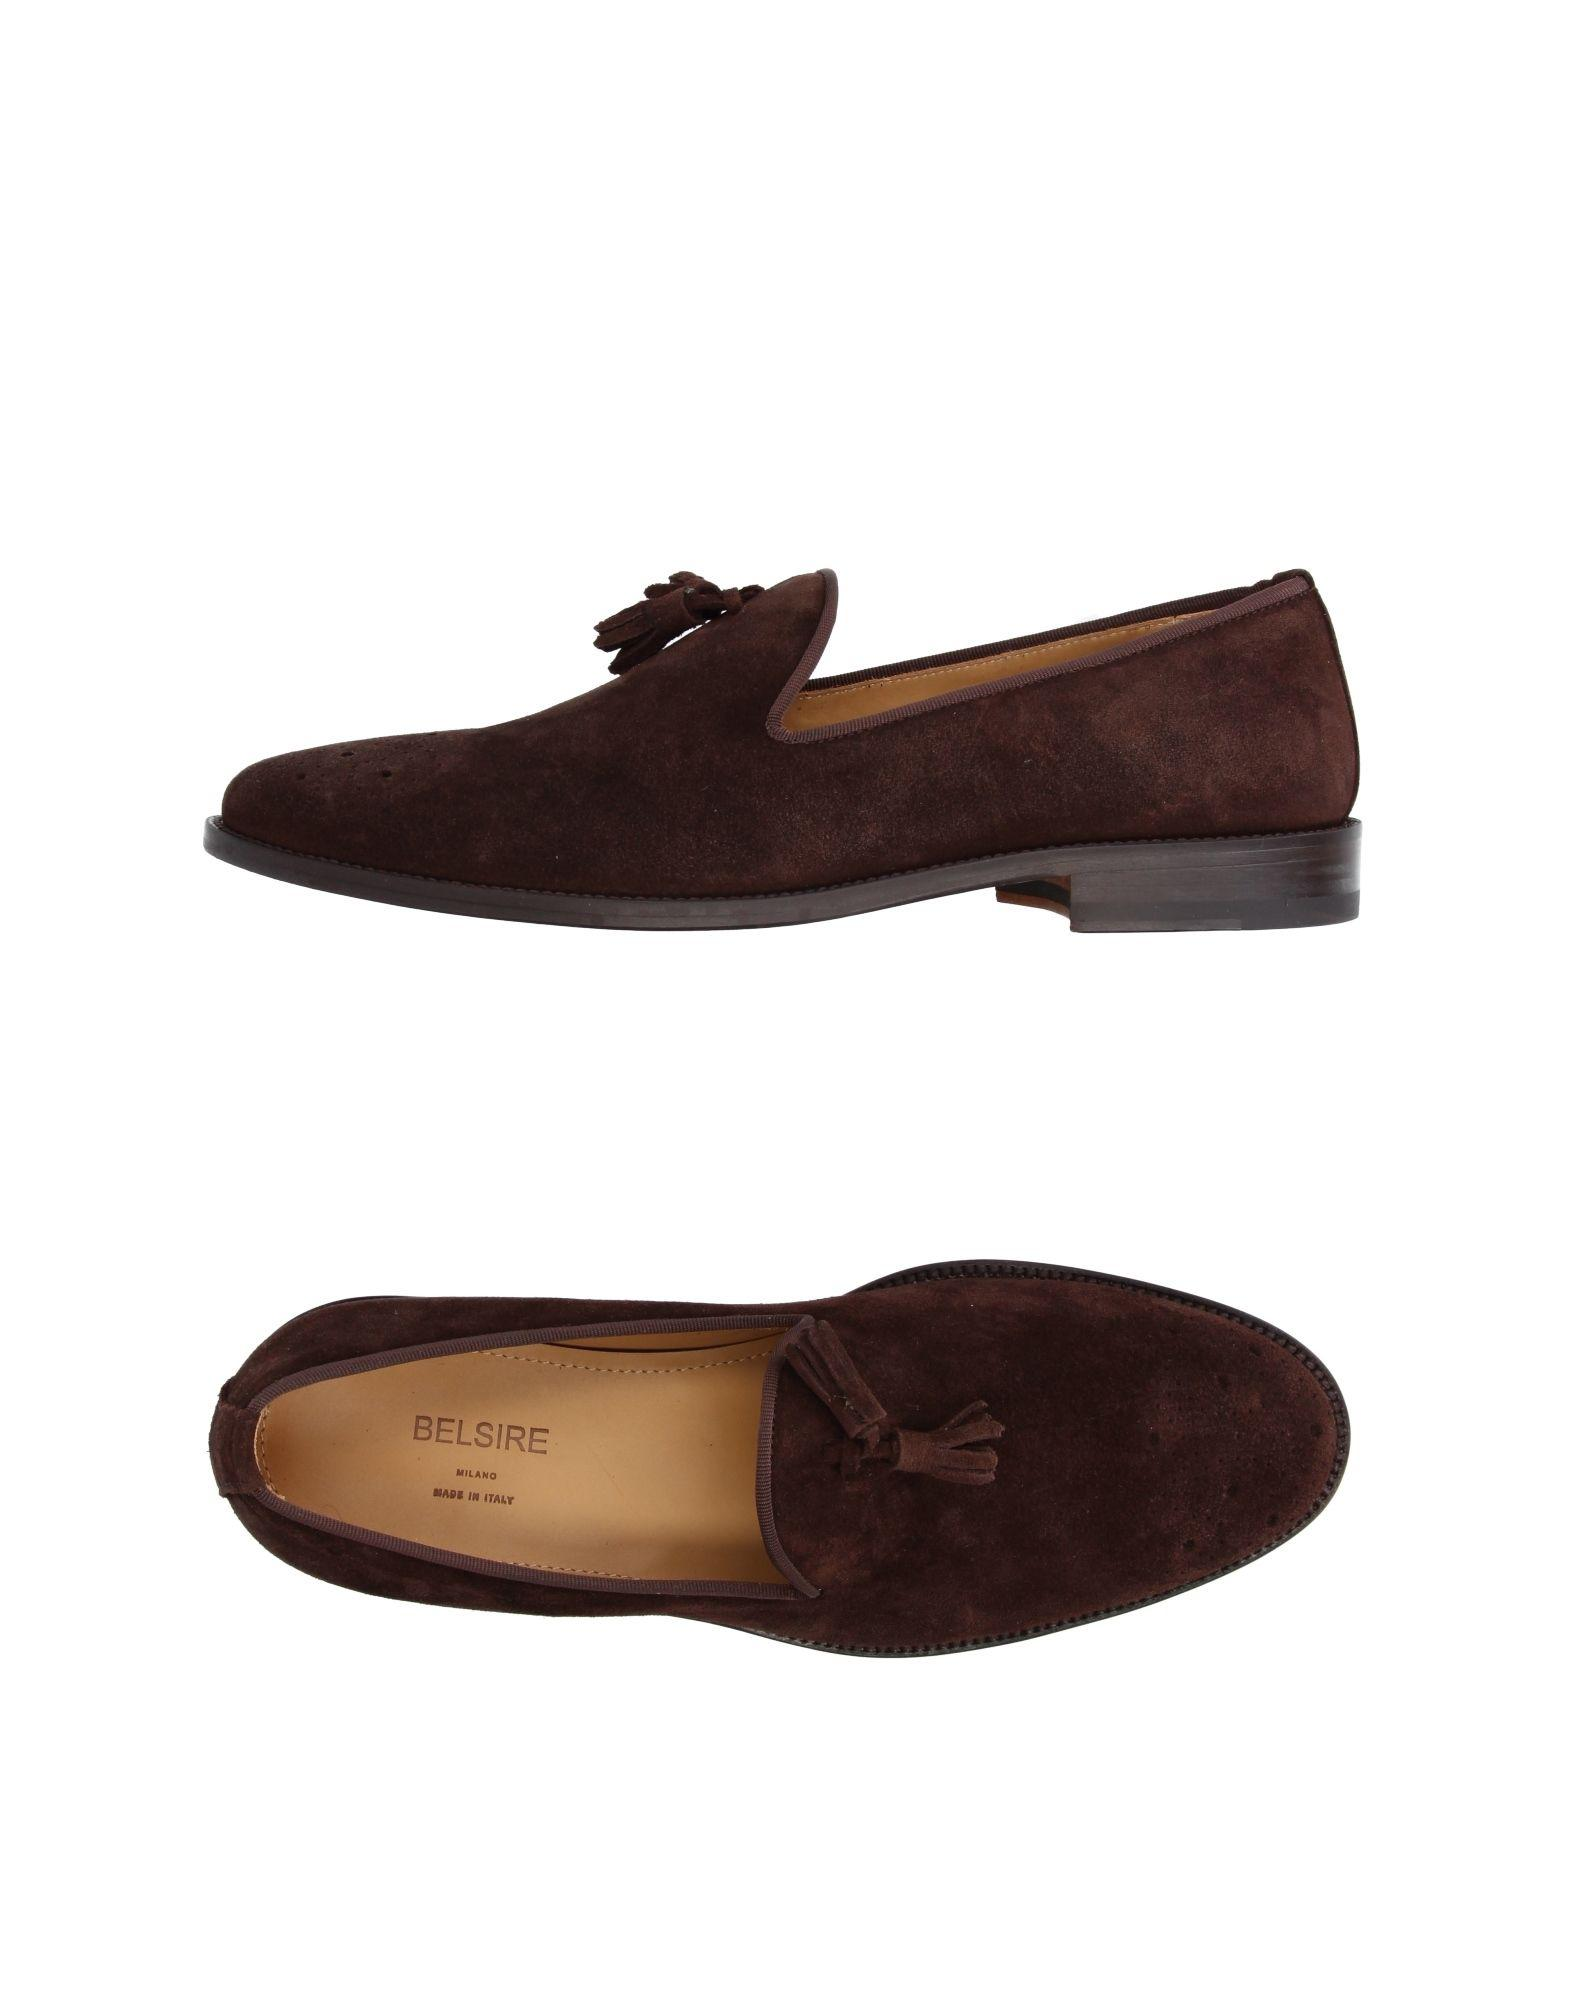 Black Leather and Suede Sneakers BELSIRE MILANO Sale Pictures Wide Range Of Cheap Outlet k6DLR